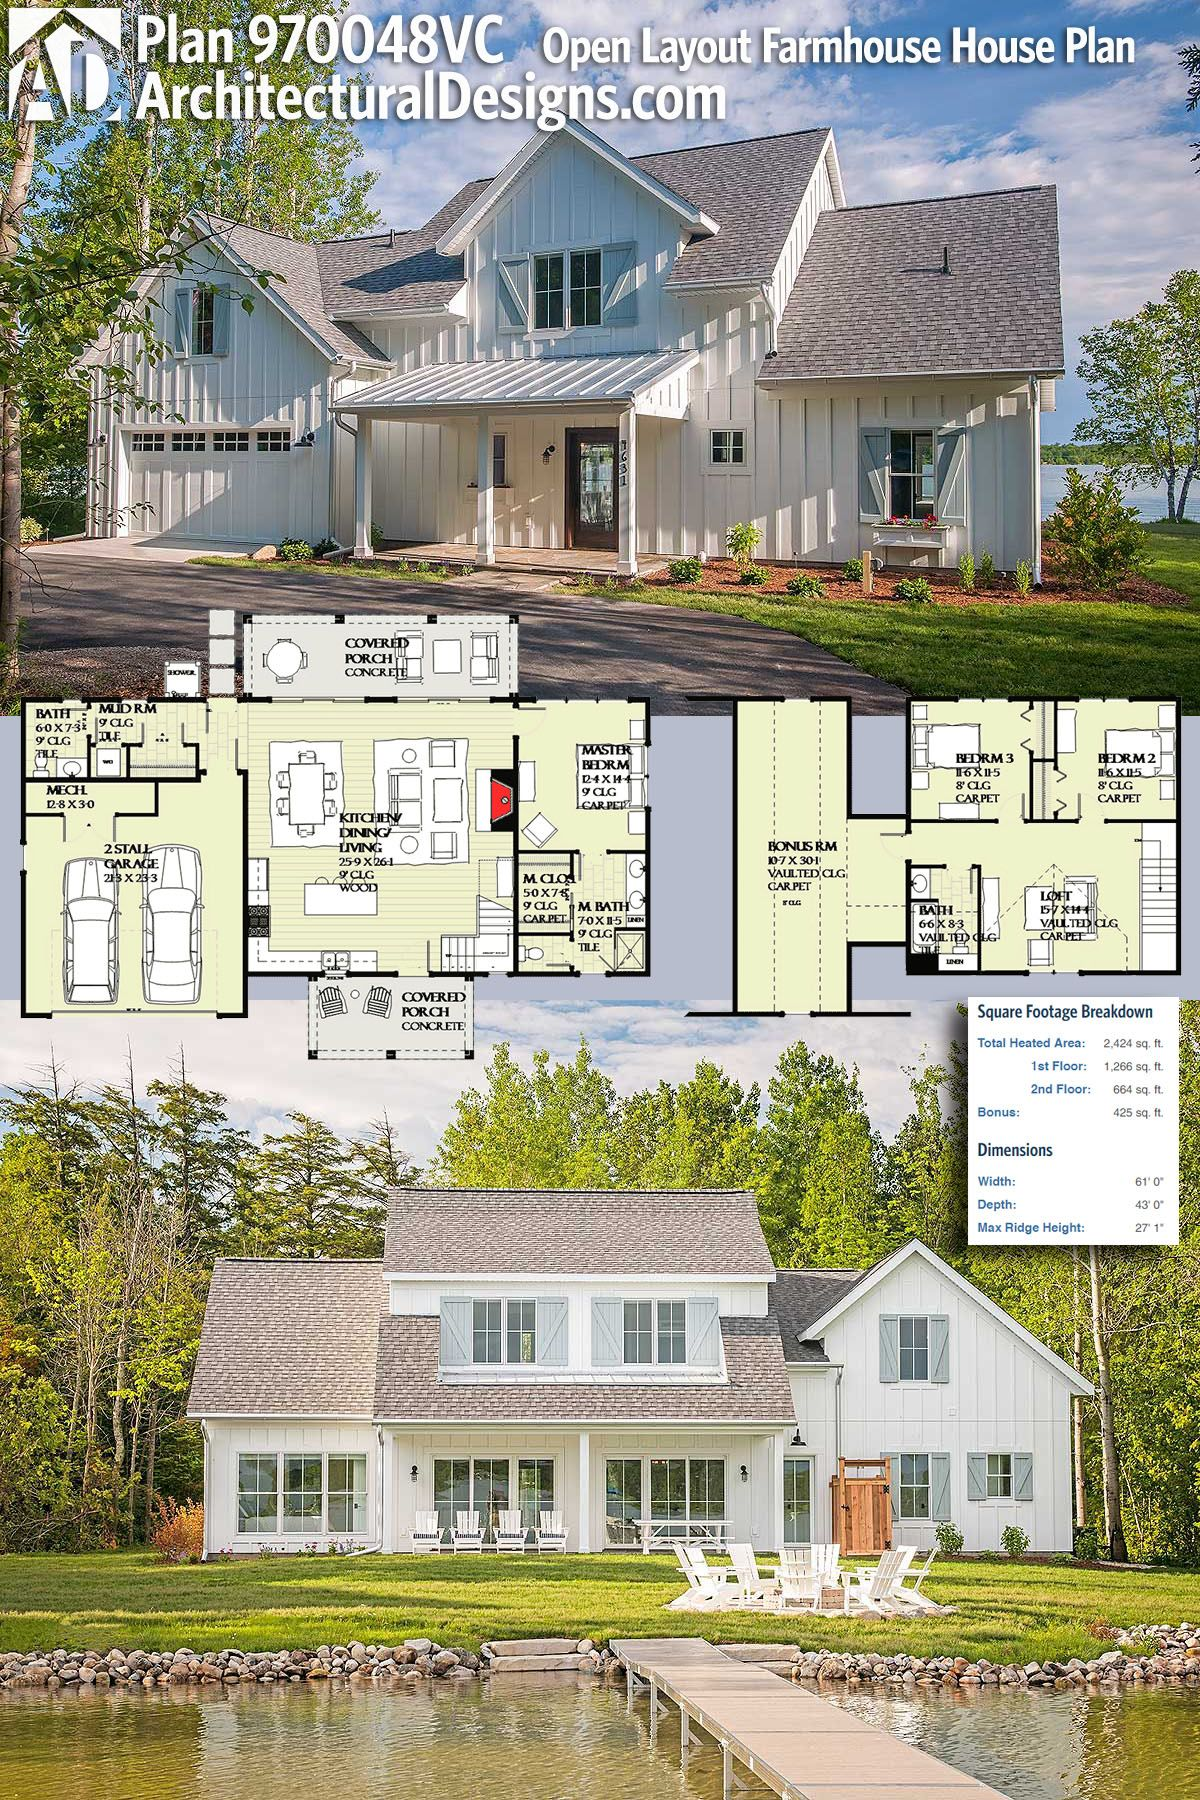 Plan 970048VC Open Layout Farmhouse House